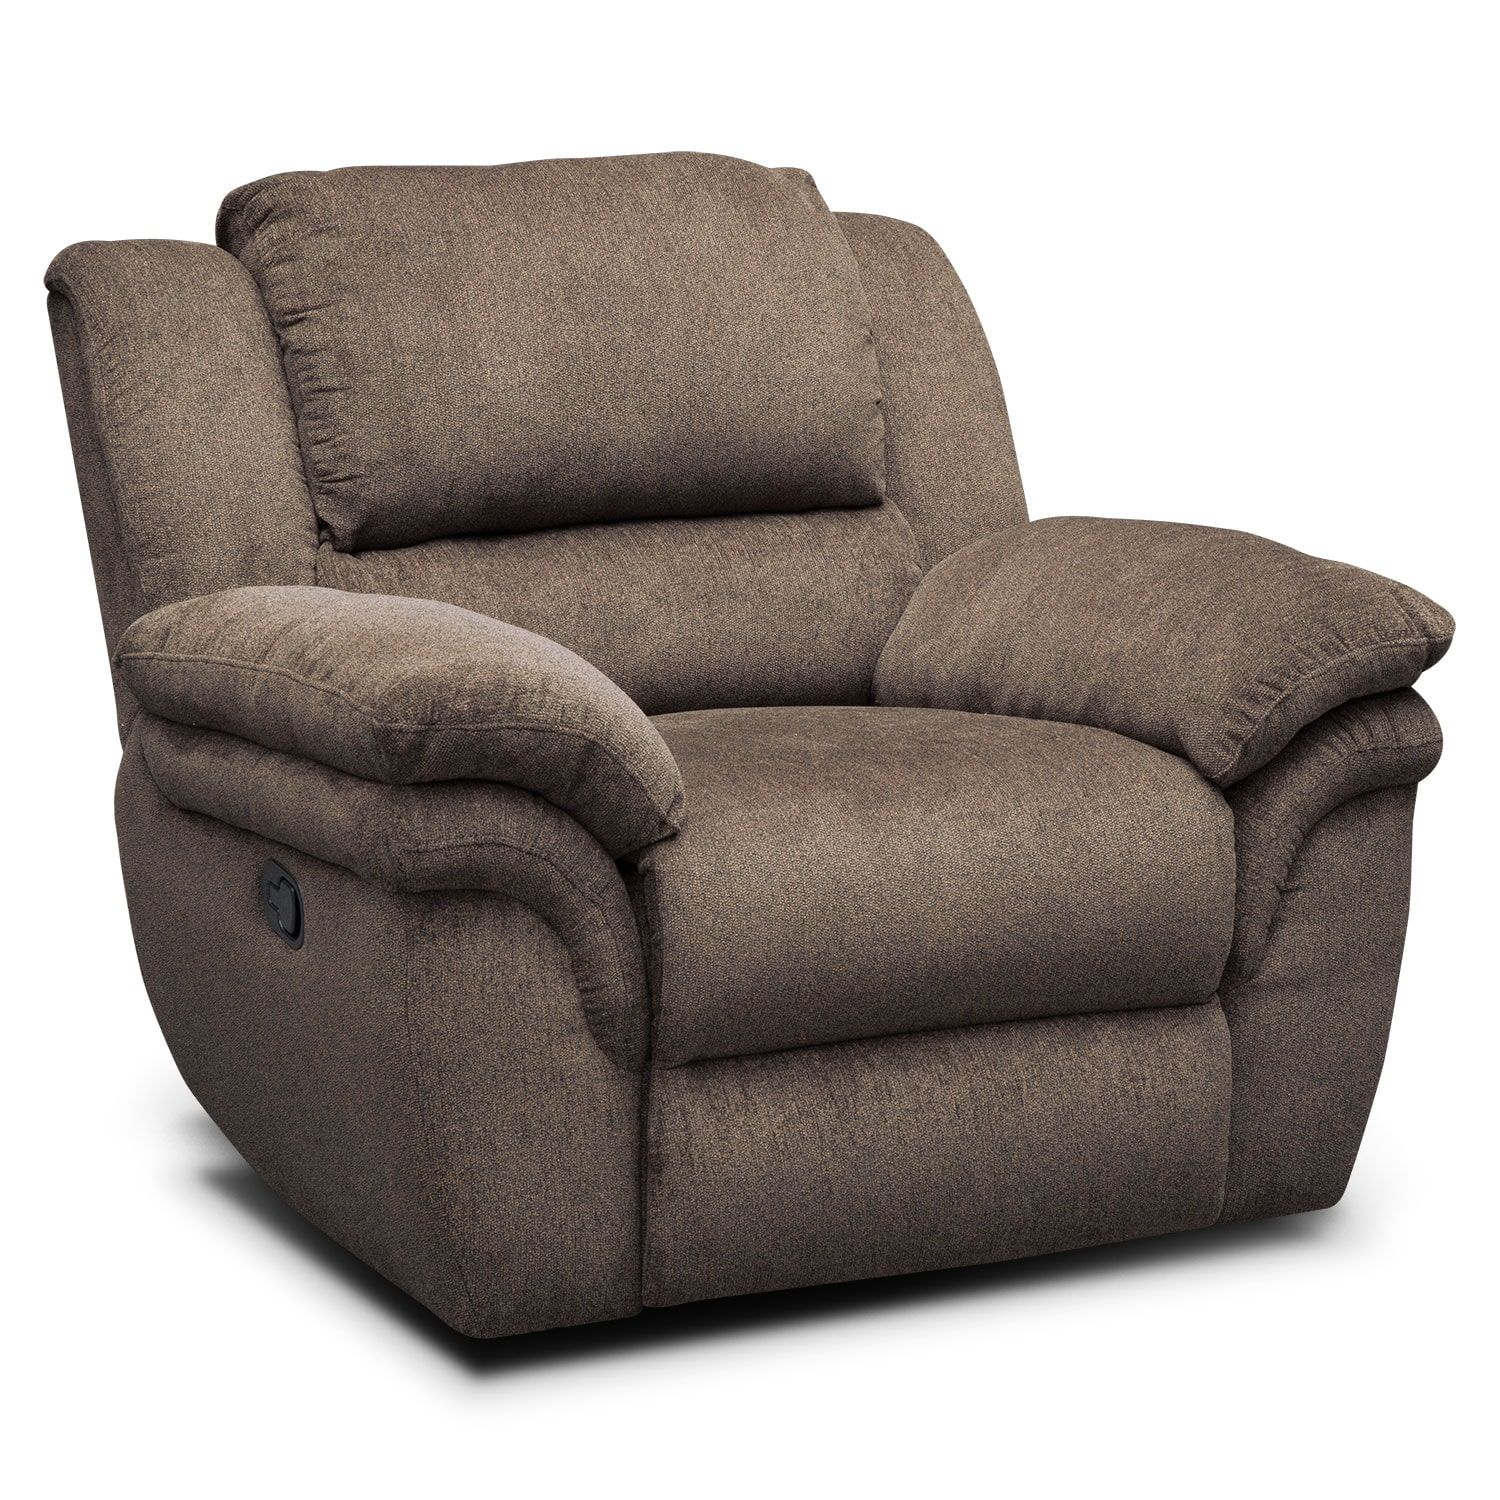 Living Room Furniture - Omni Mocha Manual Recliner